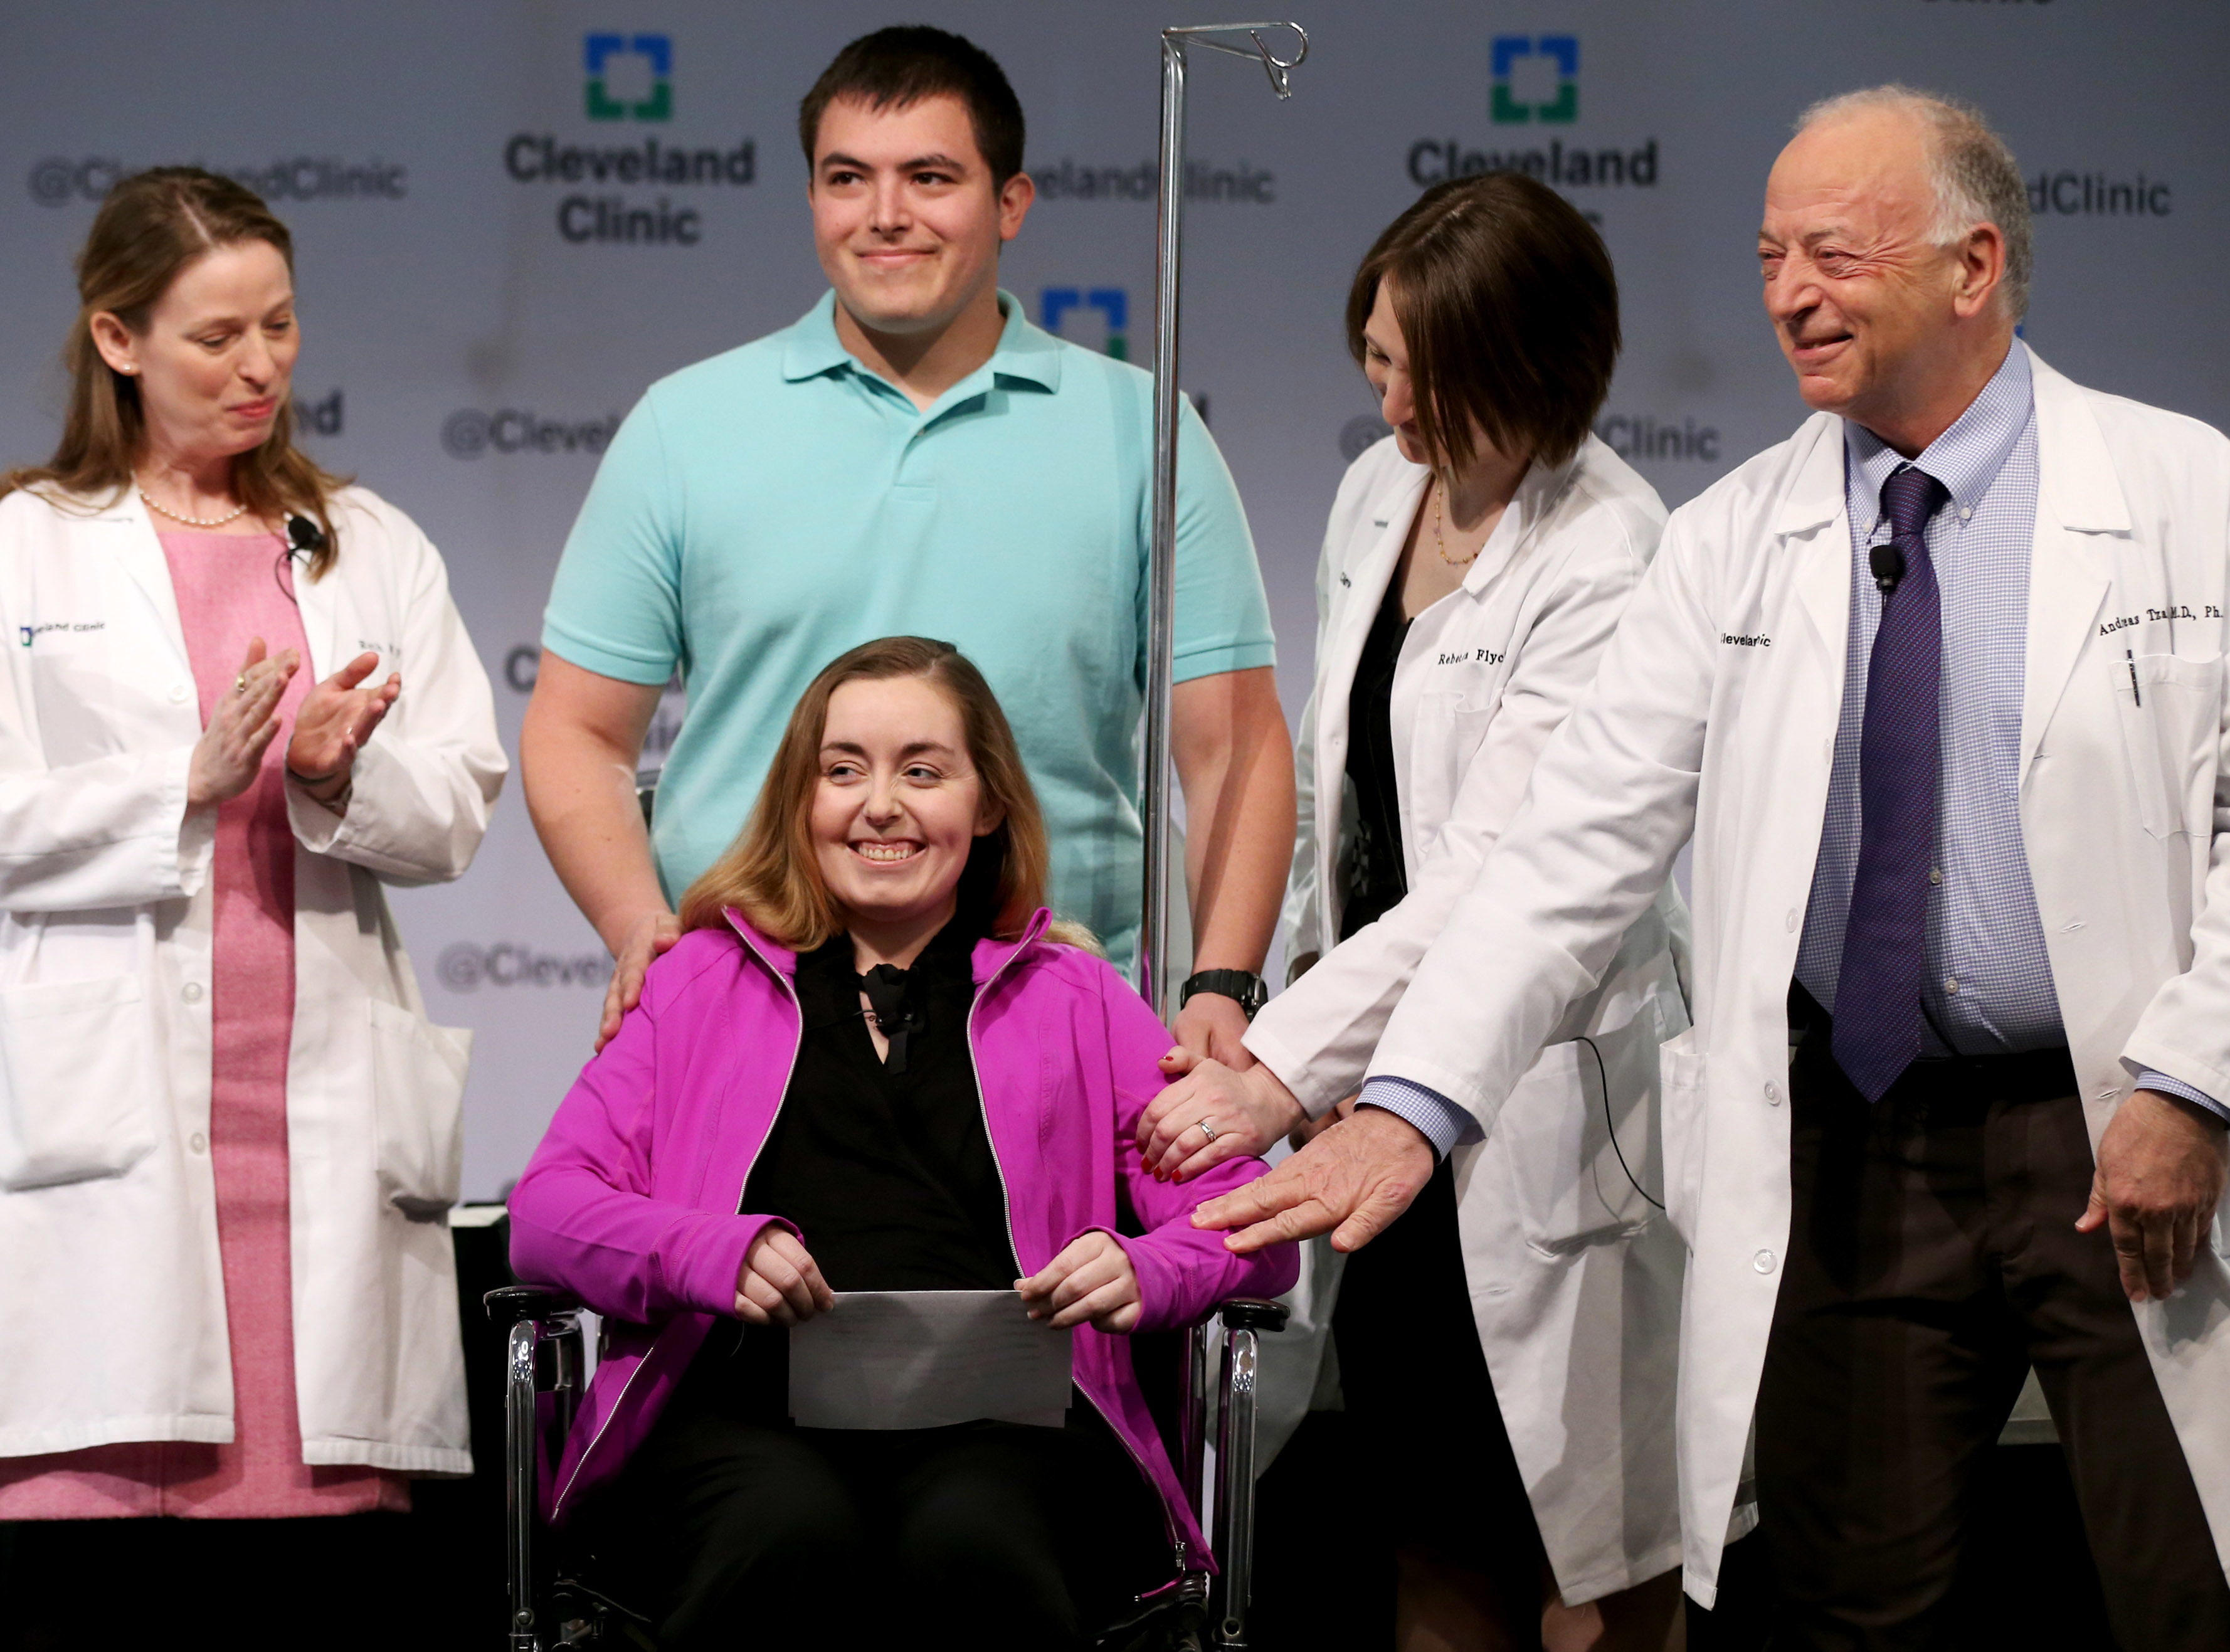 Lindsey and her husband Blake stand with Cleveland Clinic medical staff as they announce she was the nation's first uterus transplant patient, March 7, 2016, in Cleveland, Ohio